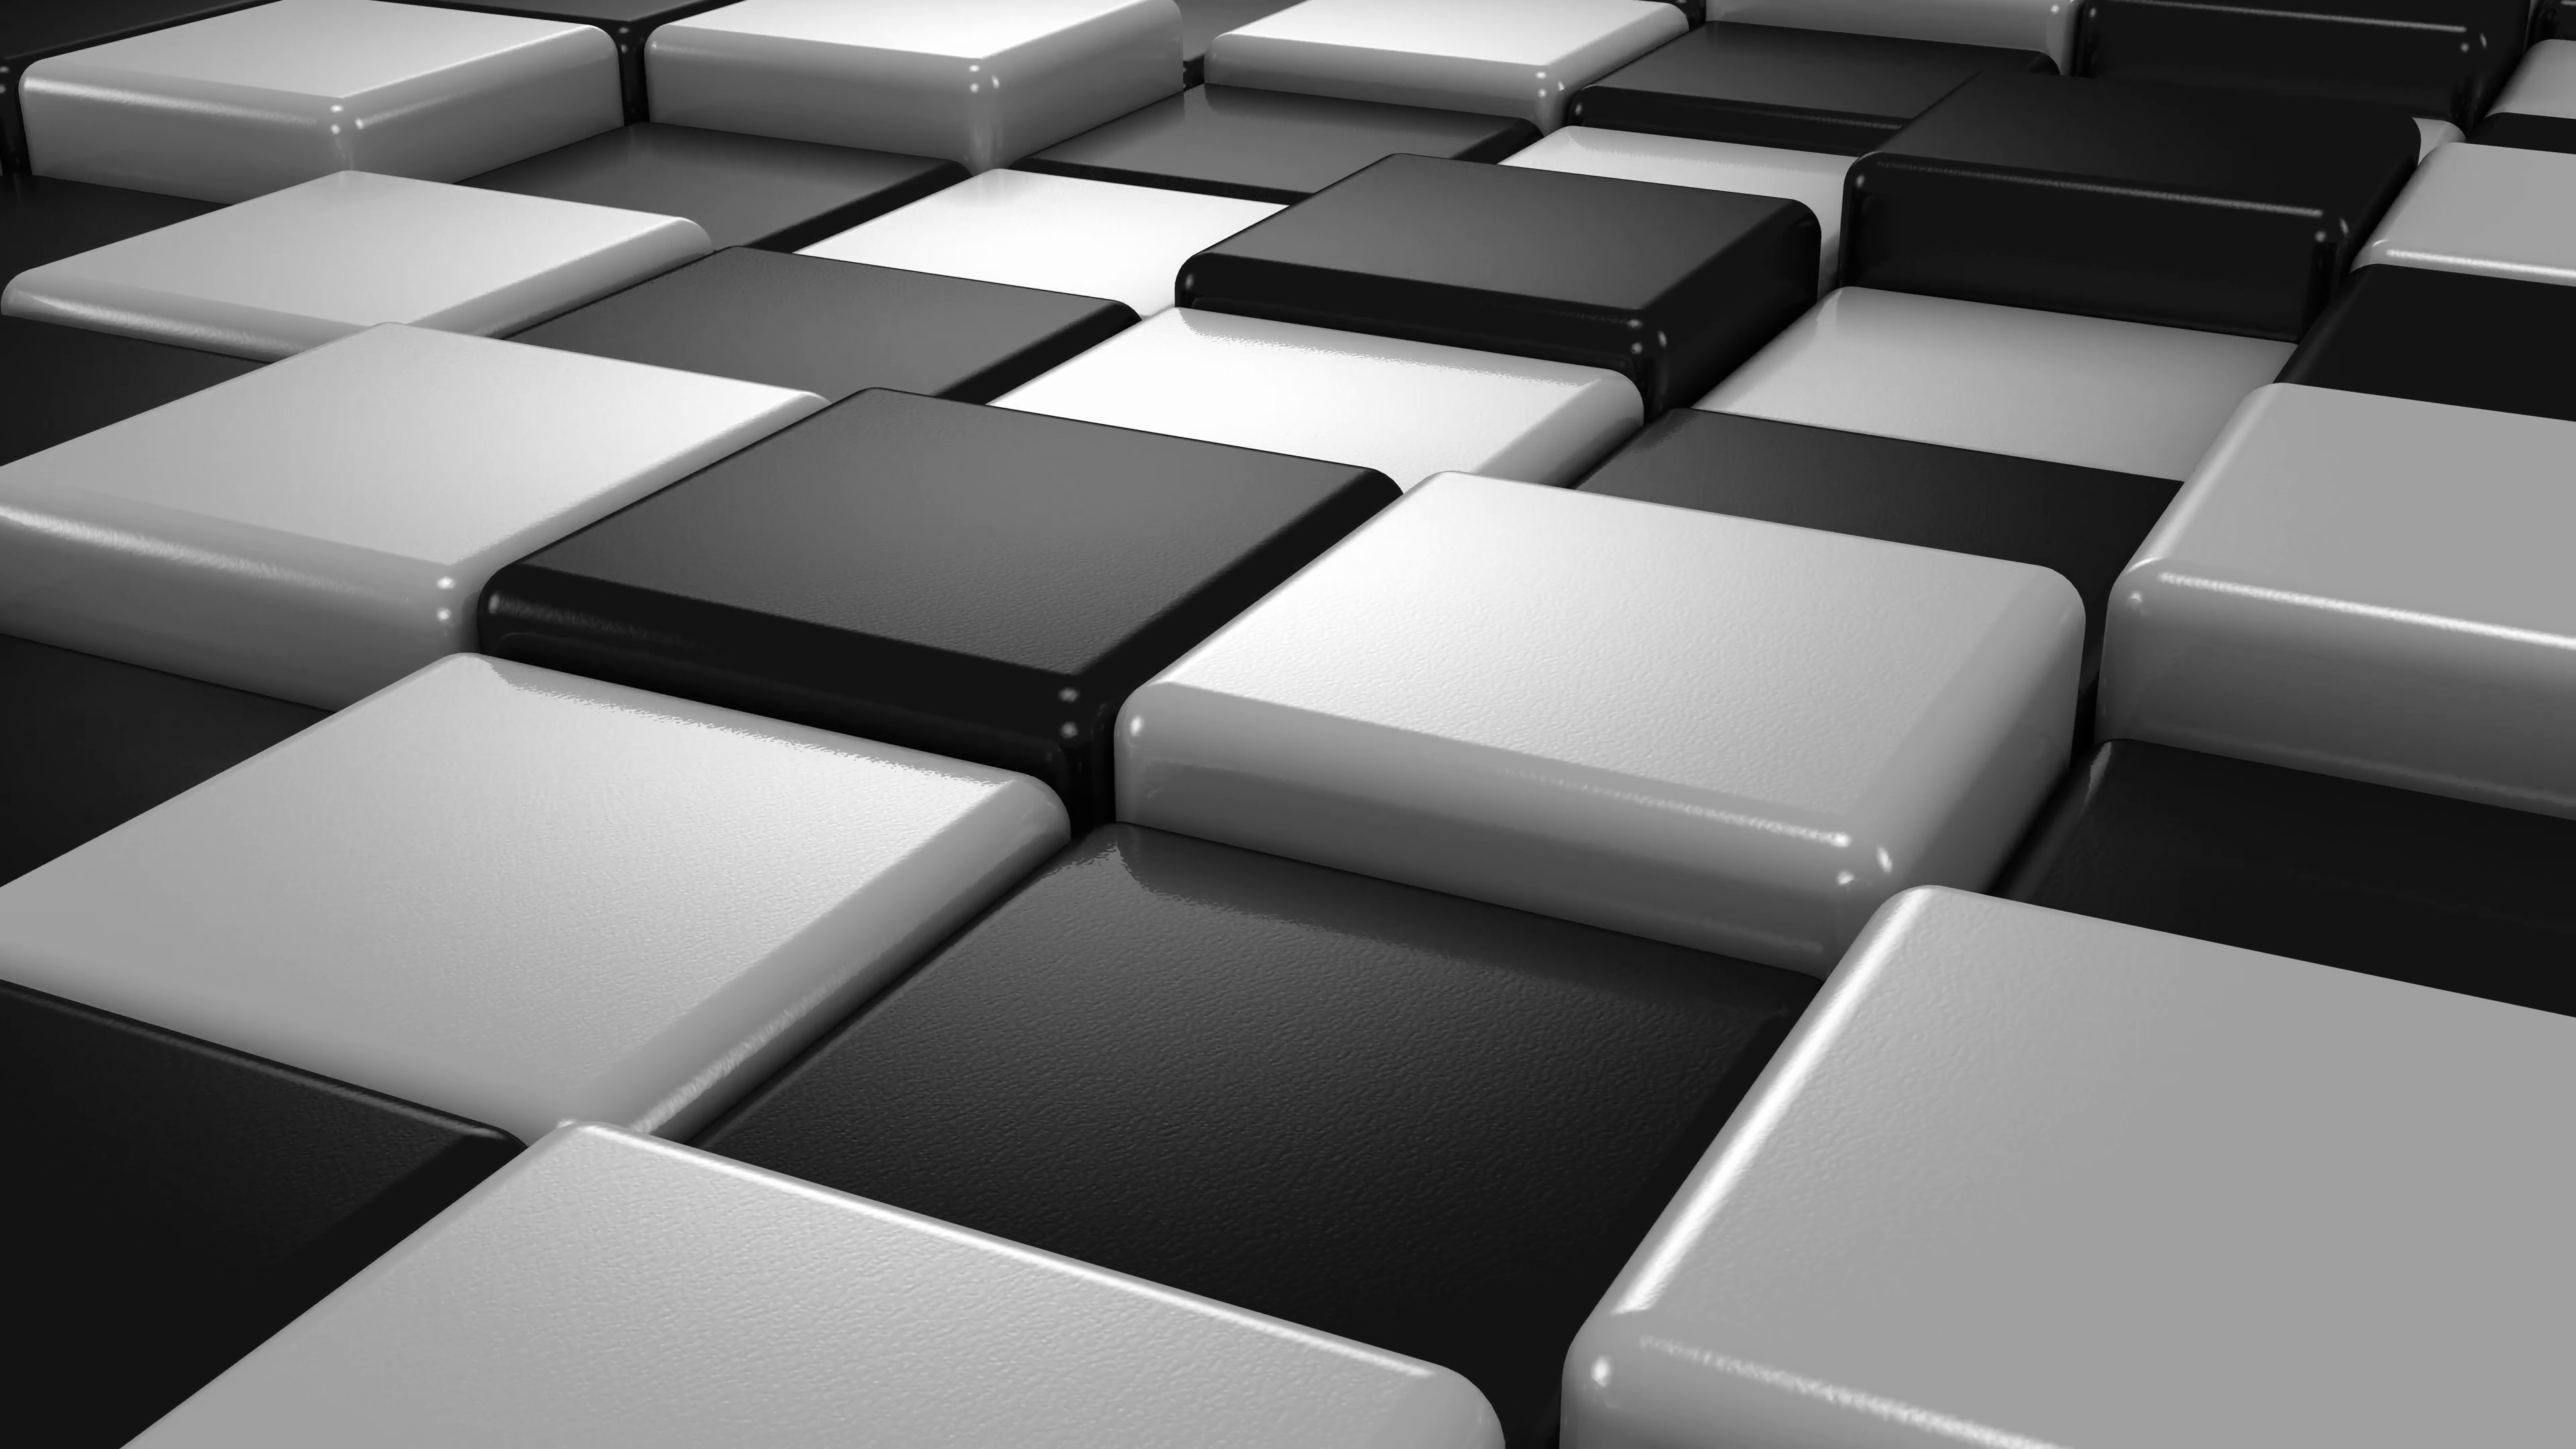 Abstract Background Of White And Black Cubes Motion Monochrome 3840x2160 Wallpaper Teahub Io